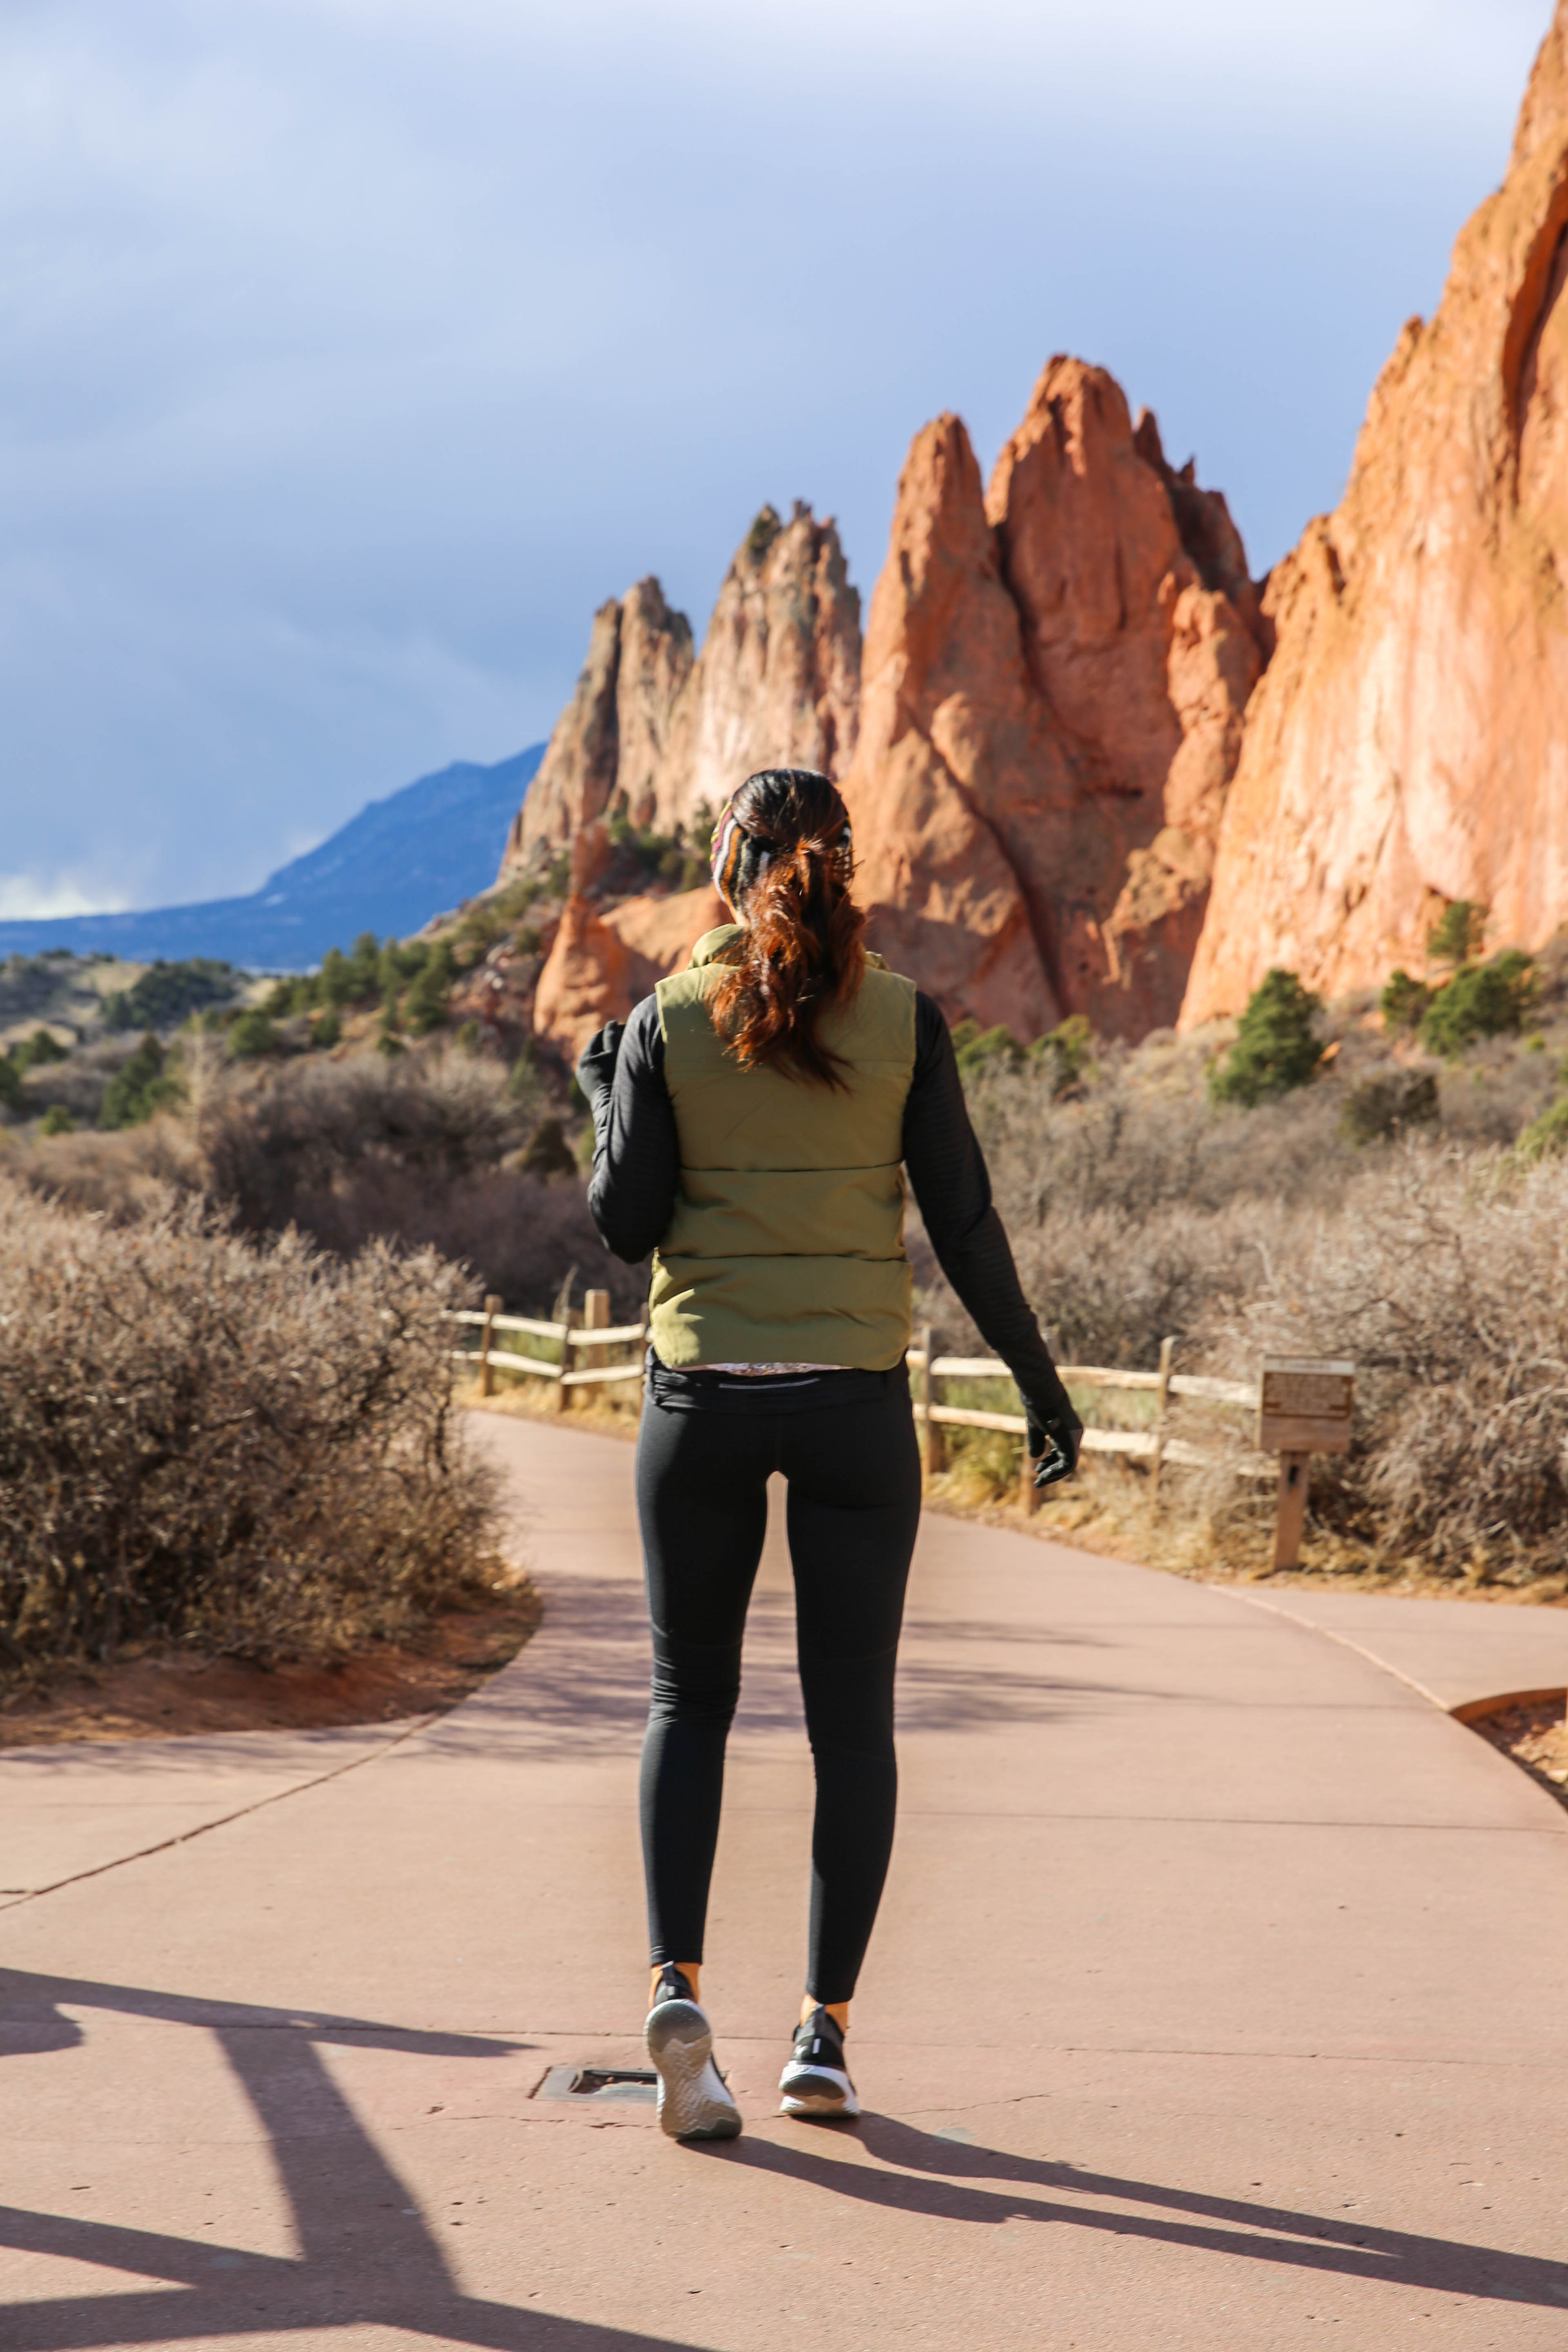 Taking My Running Goals to Garden of the Gods